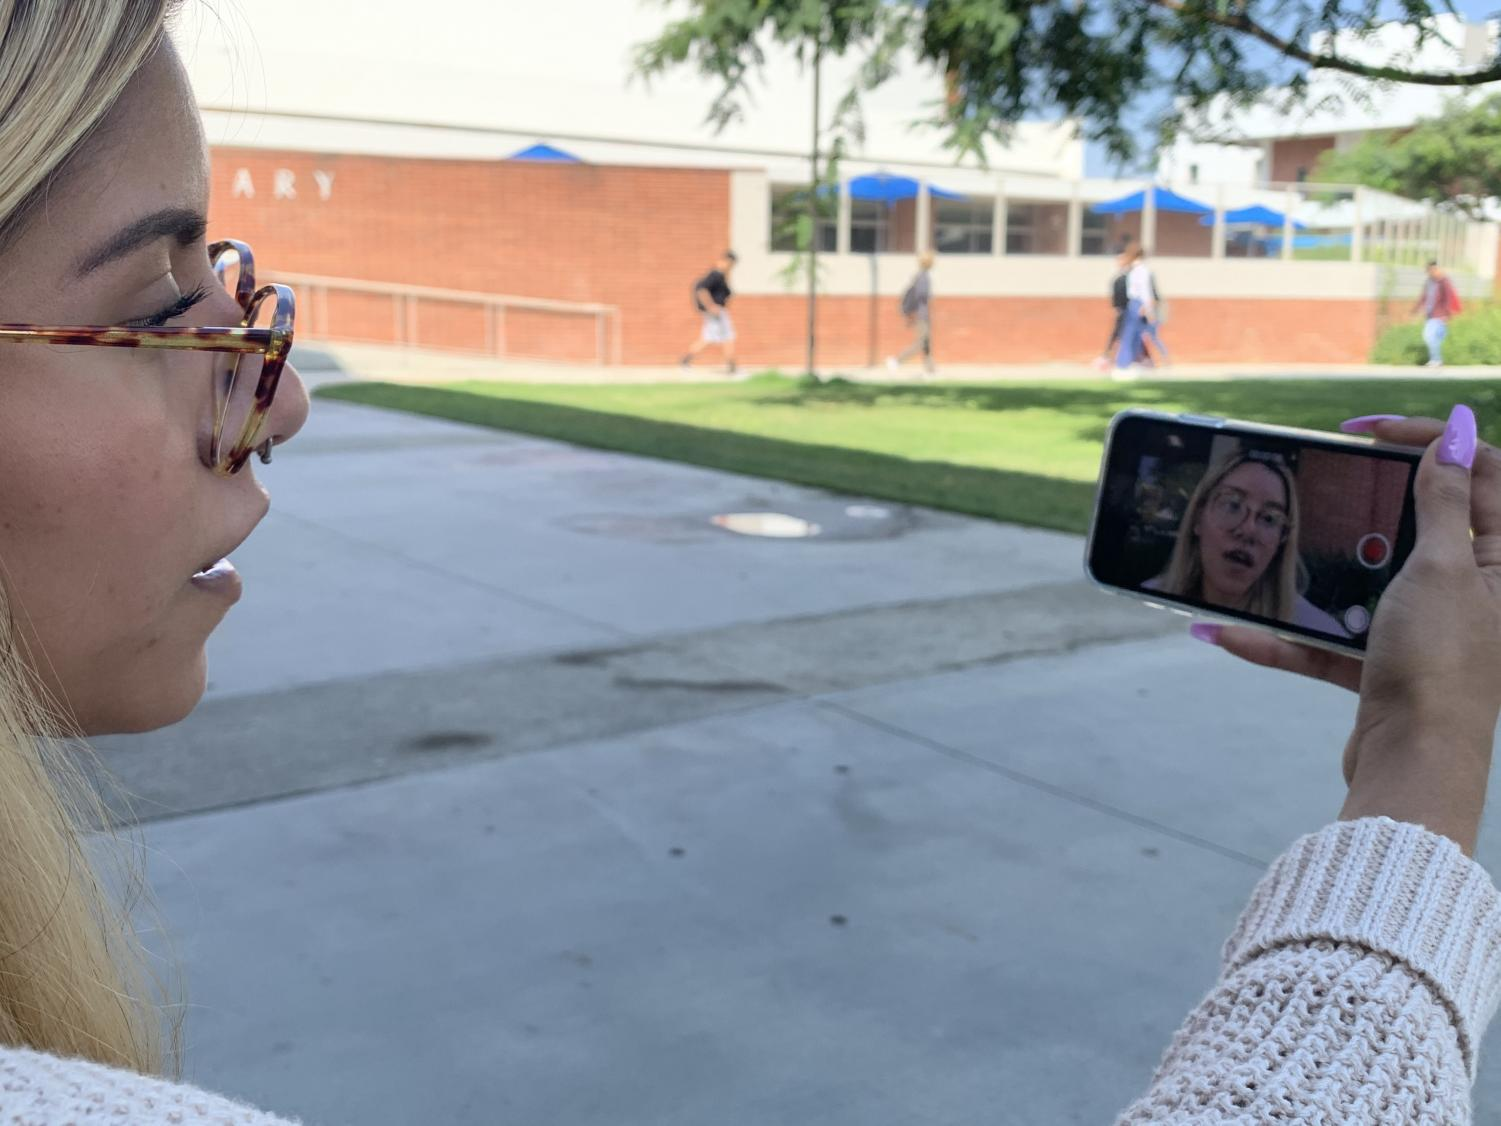 "Ruth Maldonado, 19, psychology major, sings a cover of Lana Del Rey's song ""Lust for Life"" outside of El Camino College's Schauerman Library on Monday, Sept. 23 for her YouTube channel. ""I want my voice to be heard,"" Maldonado said. Patrick Ezewiro/The Union"